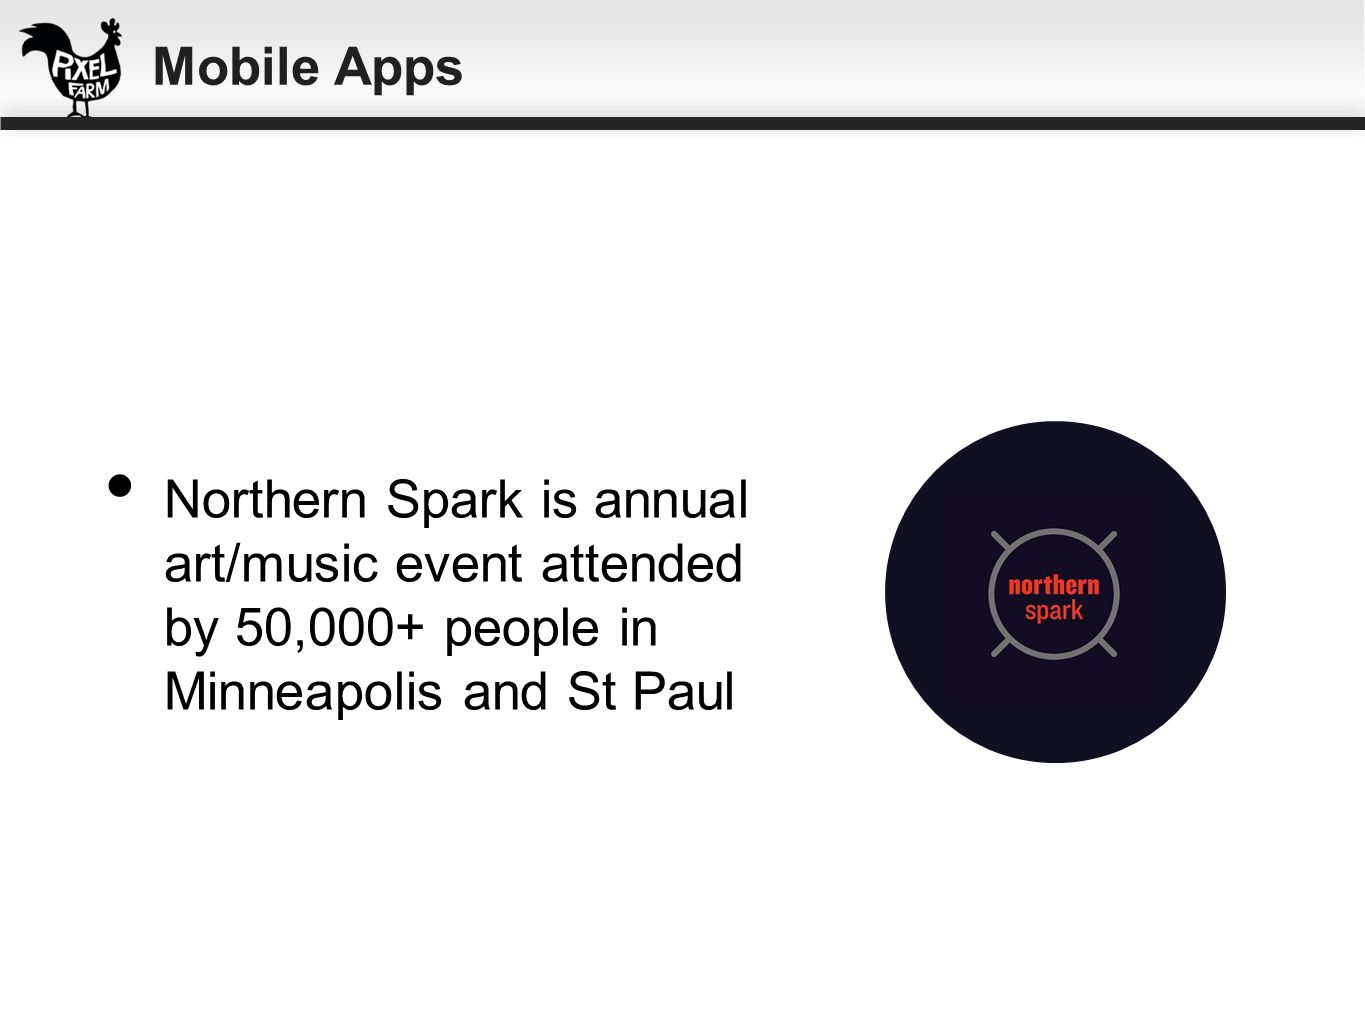 Northern Spark is annual art/music event attended by 50,000+ people in Minneapolis and St Paul Mobile Apps